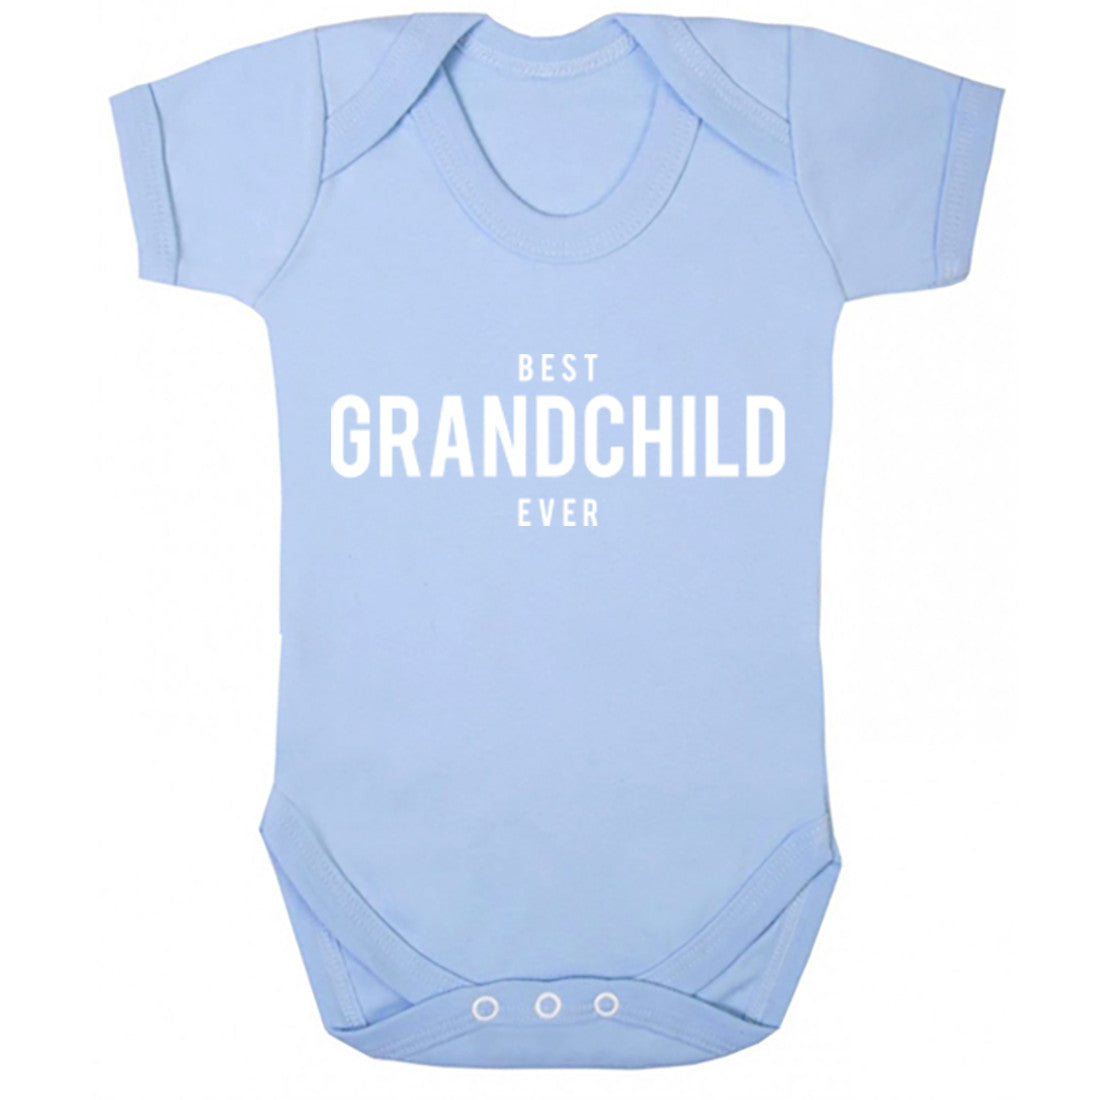 Best Grandchild Ever Baby Vest K1481